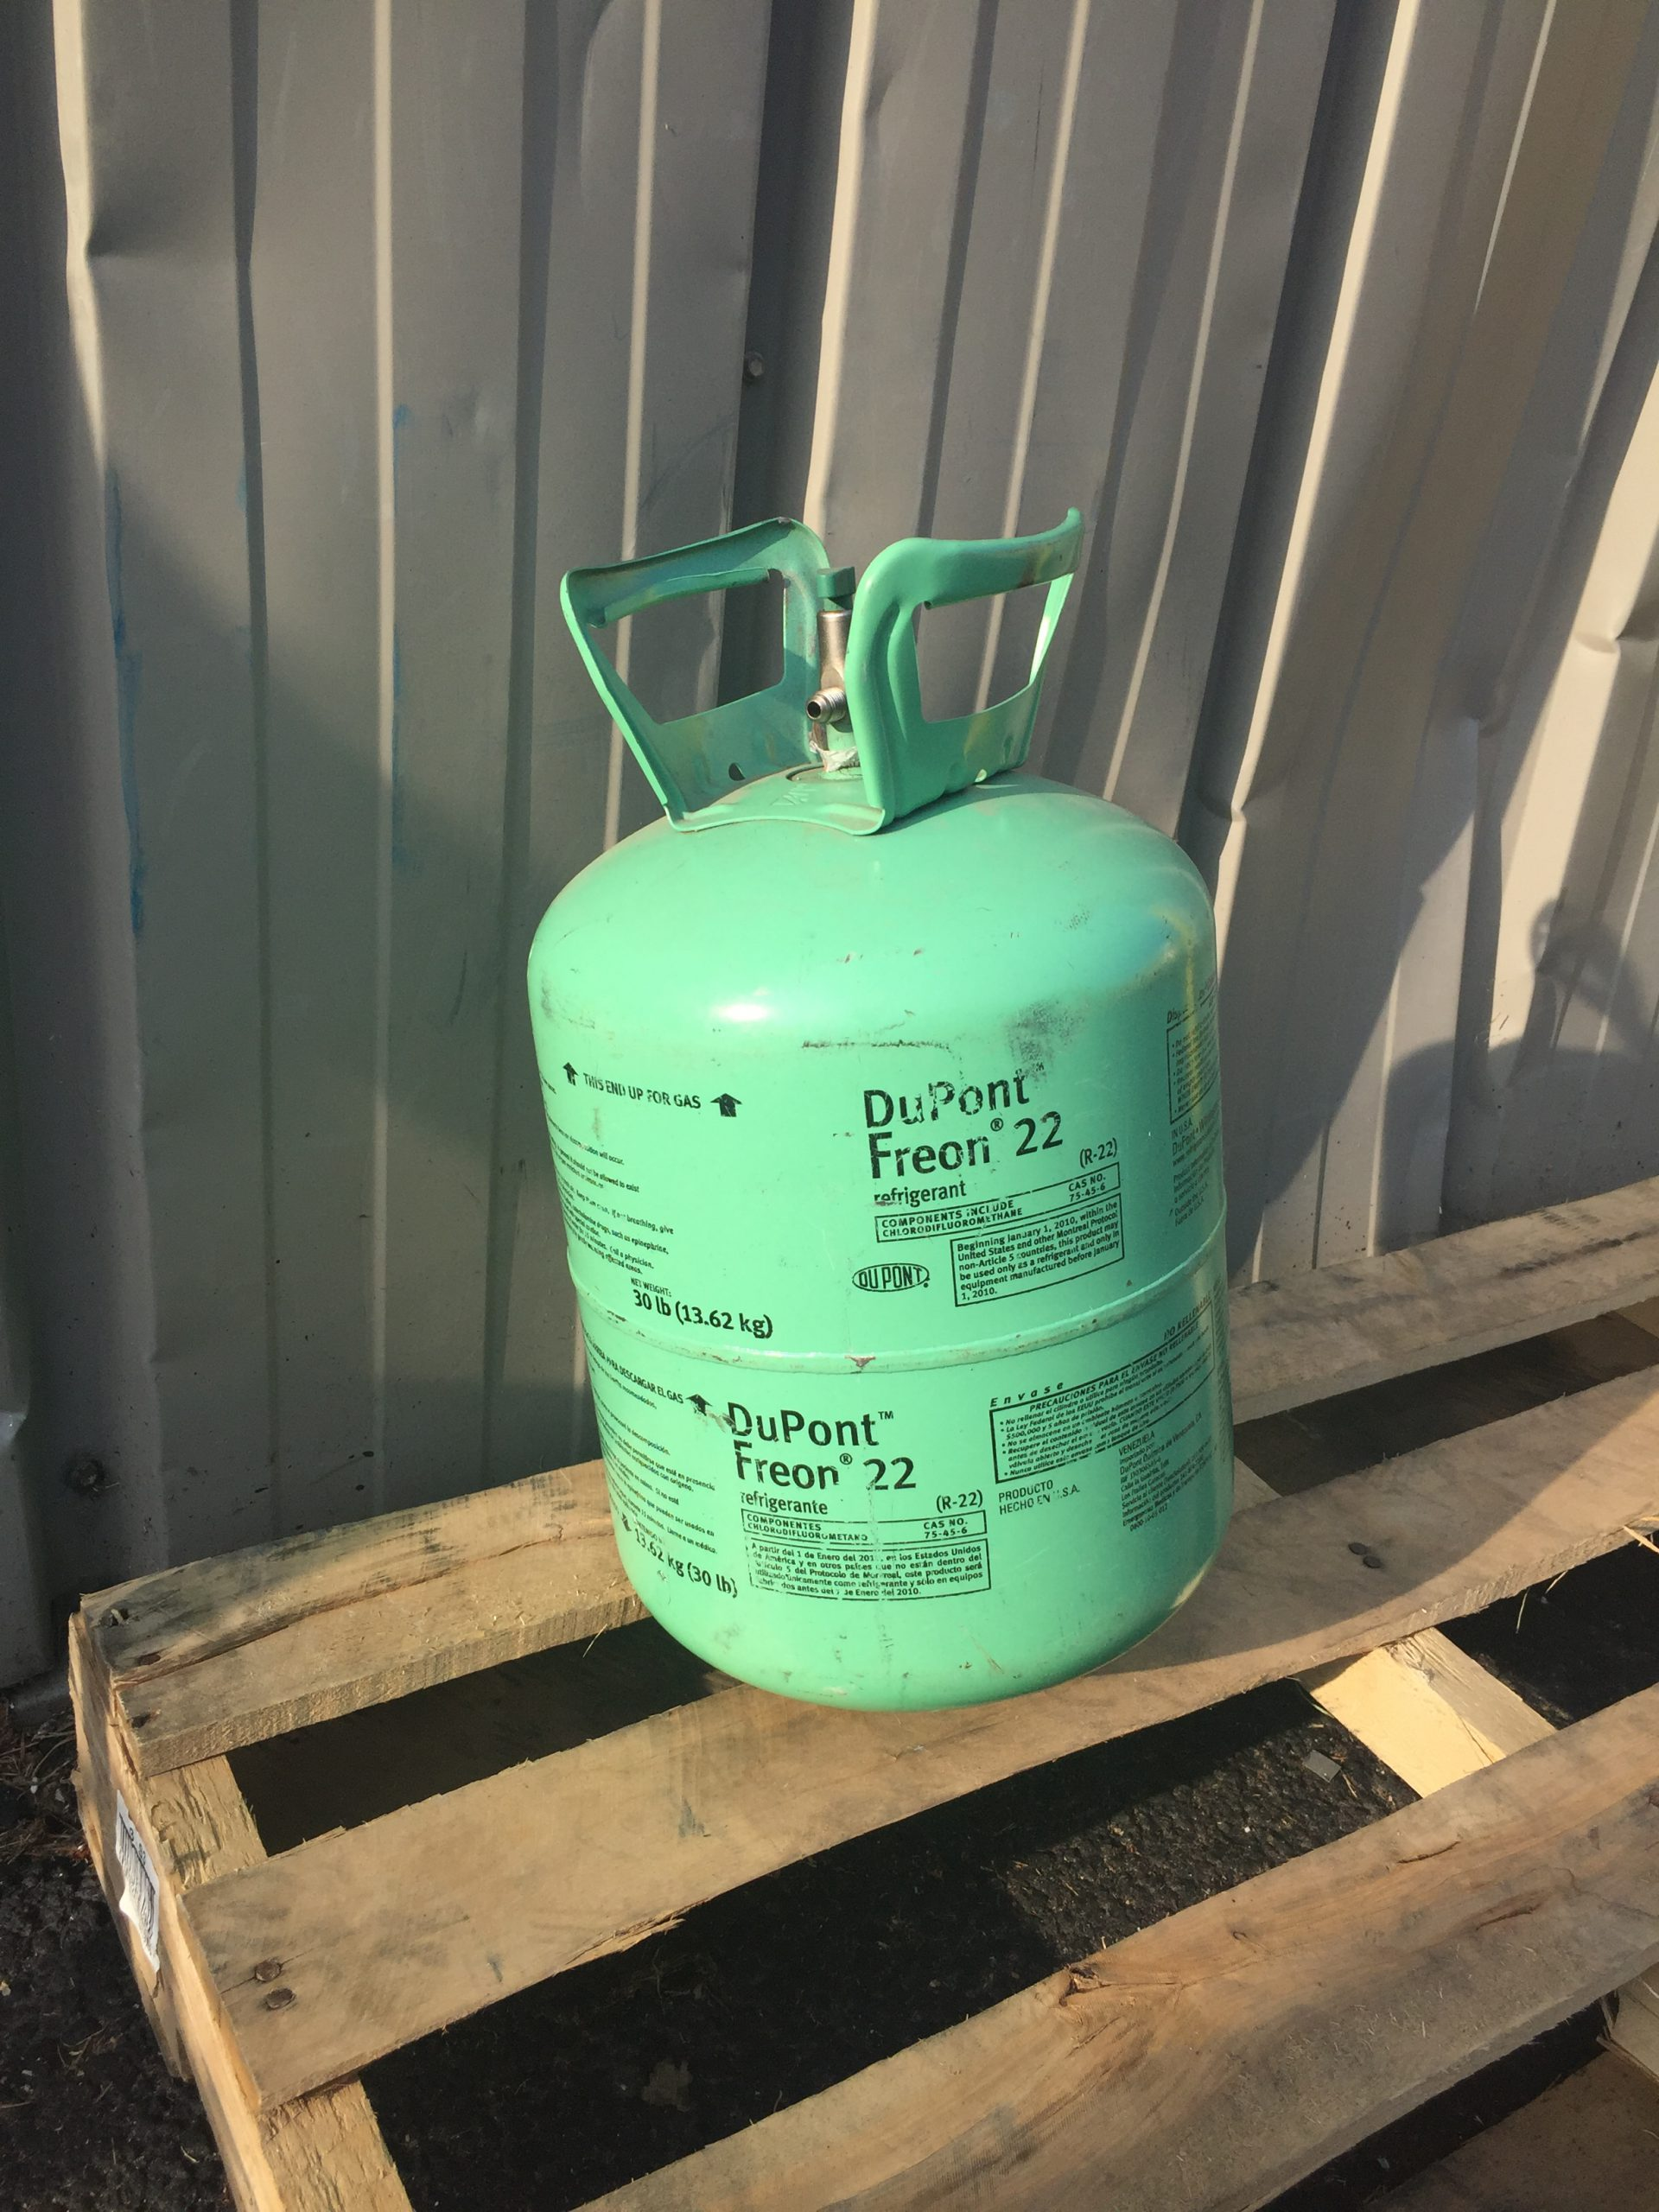 How Much Does Refrigerant Cost?